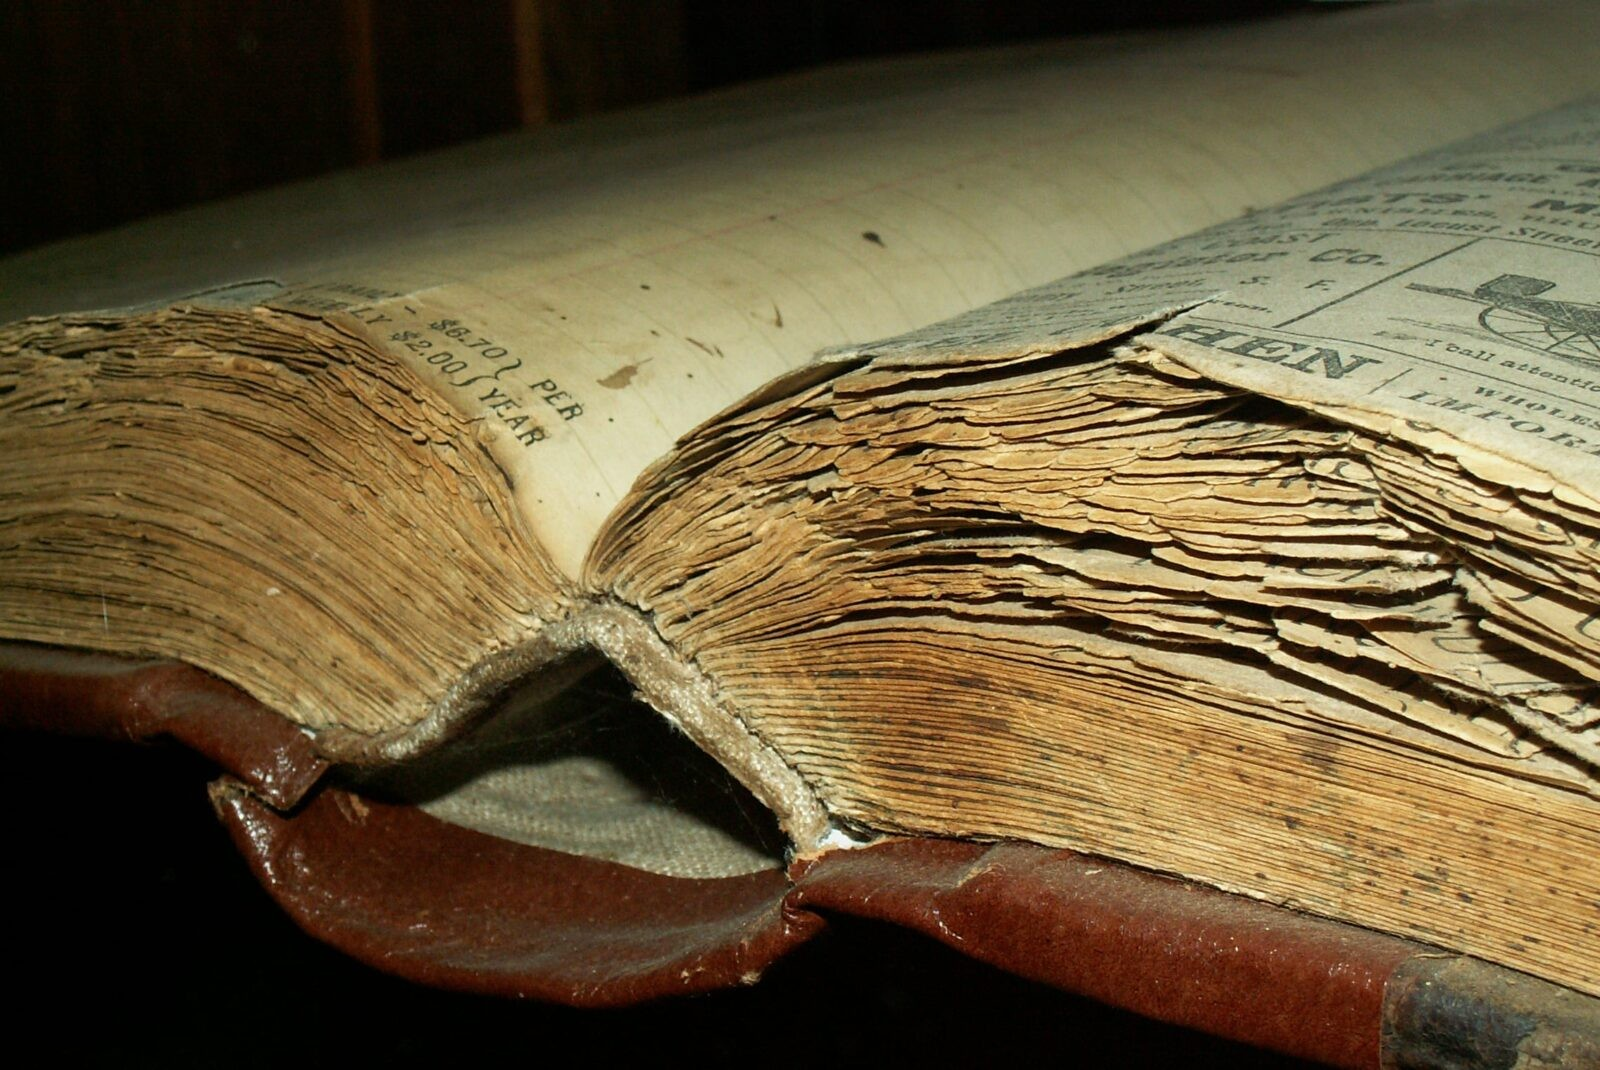 Antique book free download